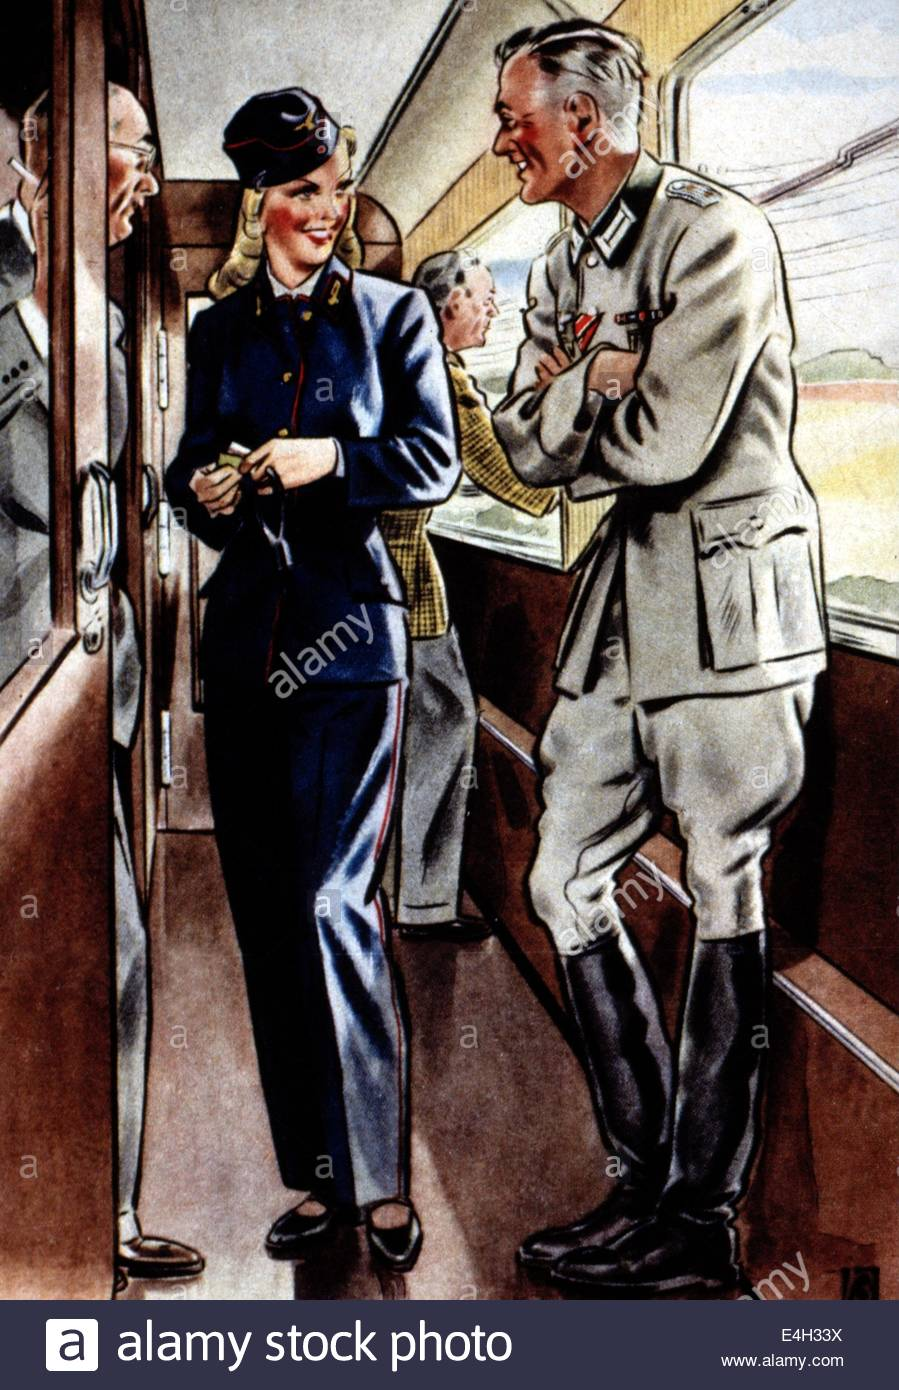 899x1390 Events Second World War Wwii Germany The Train Conductor